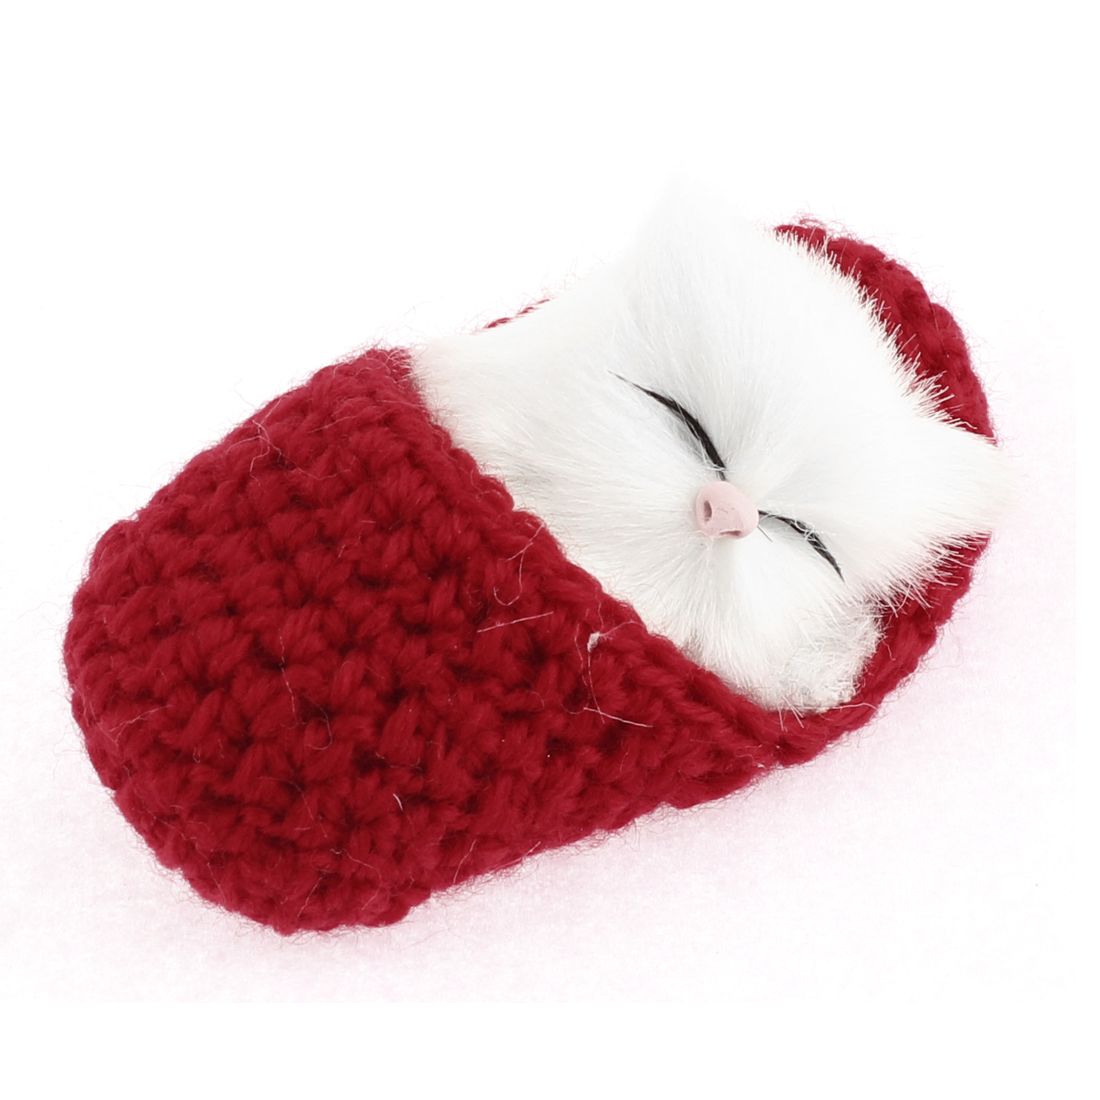 Home Decor Simulation Animal Sound Napping Sleeping Cat in Sock Red